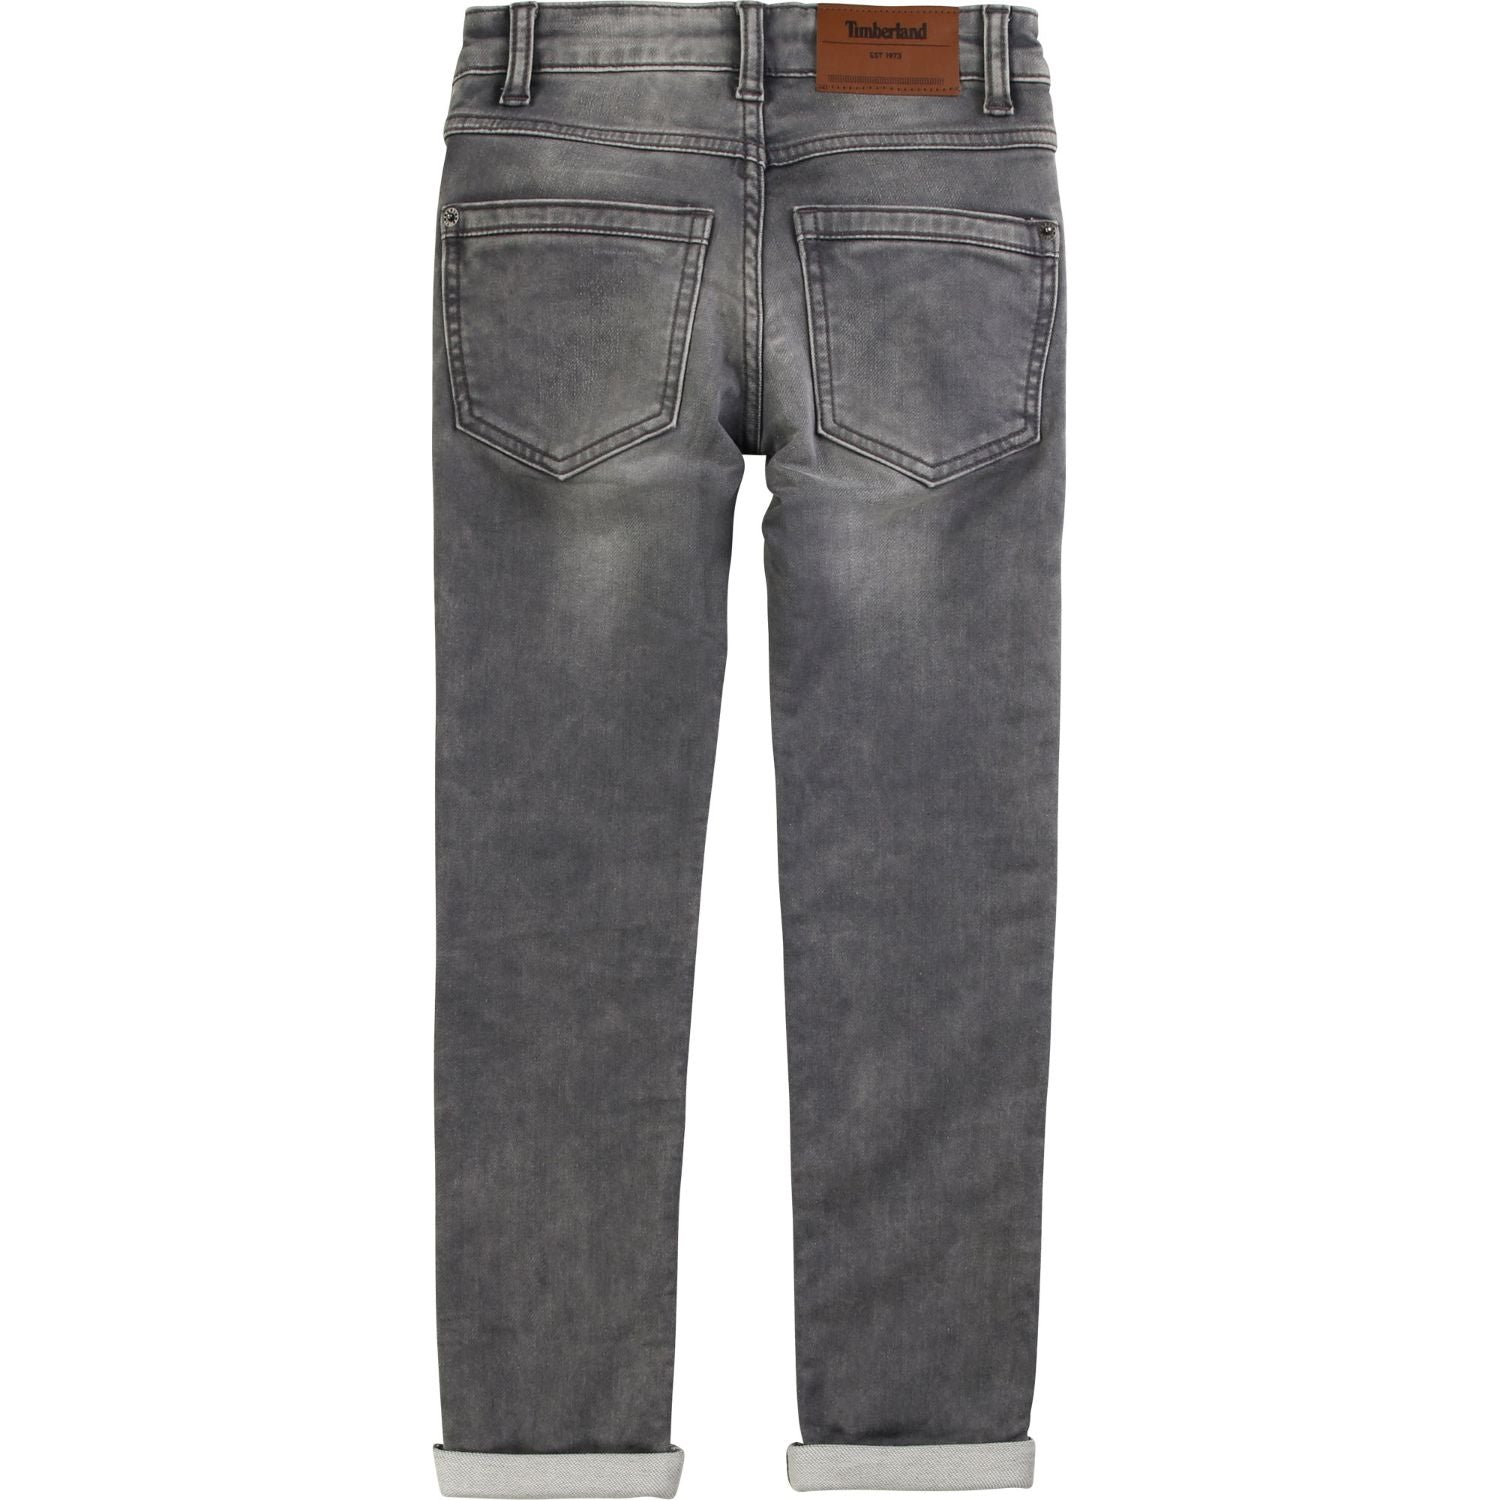 TIMBERLAND JEANS WITH ADJUSTABLE WAIST T24A83